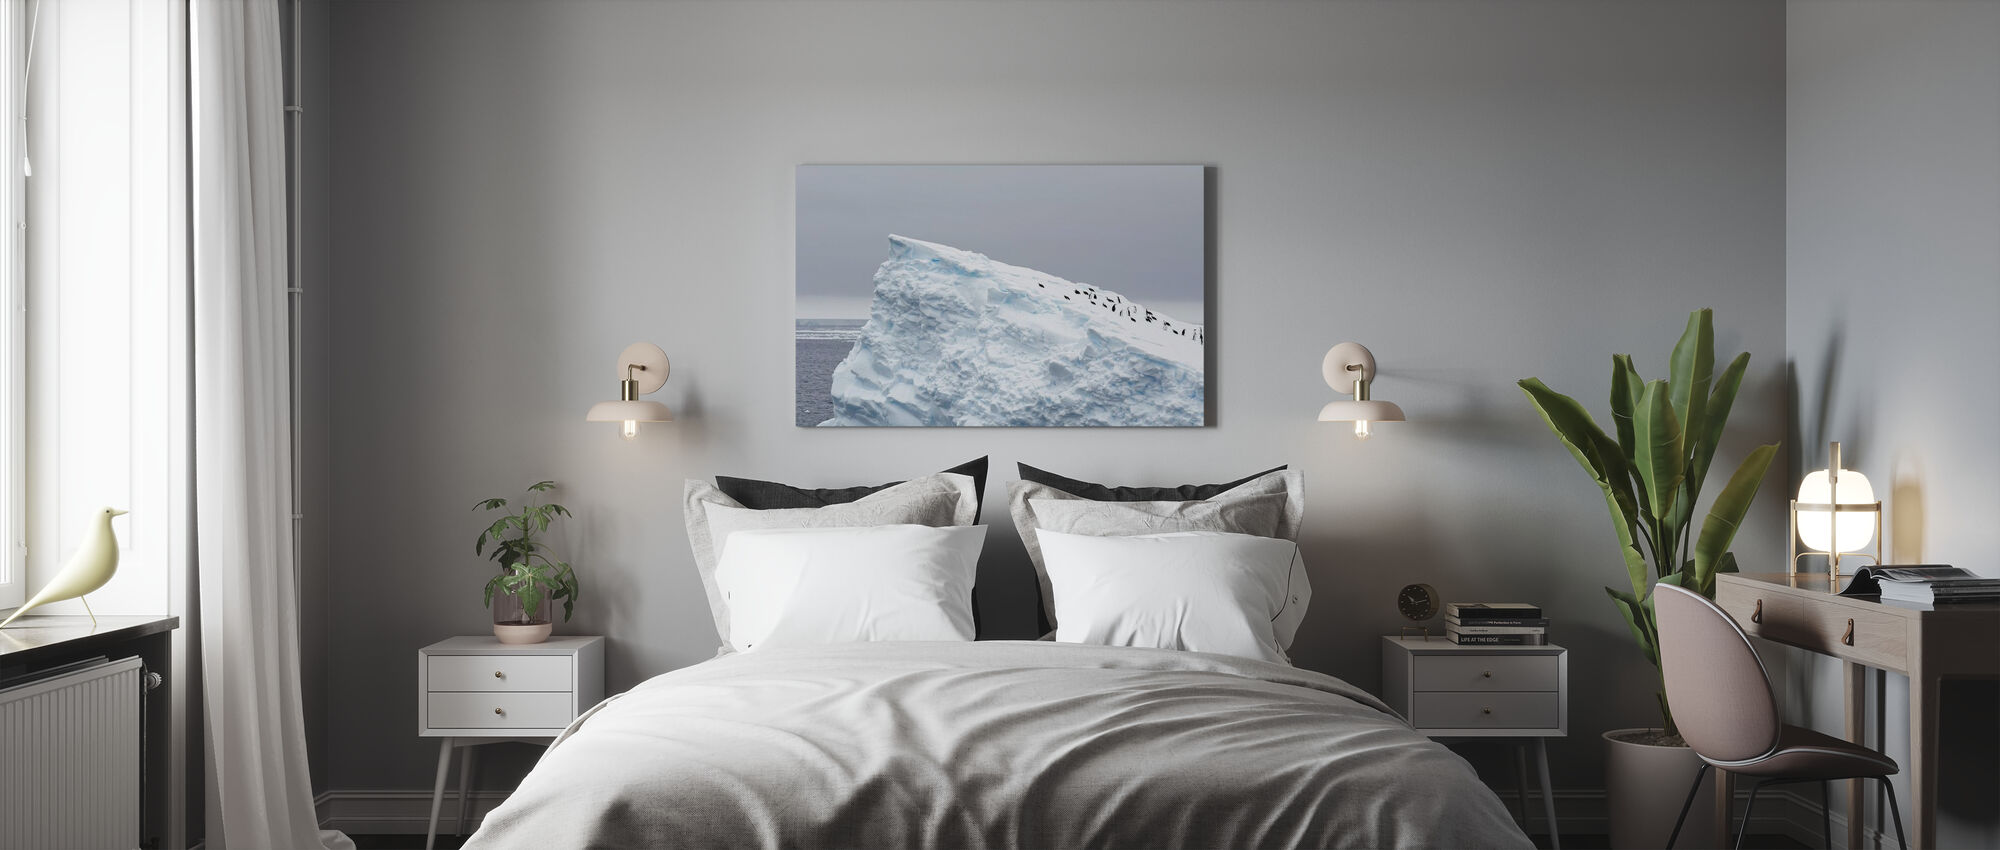 Giant Slide - Canvas print - Bedroom